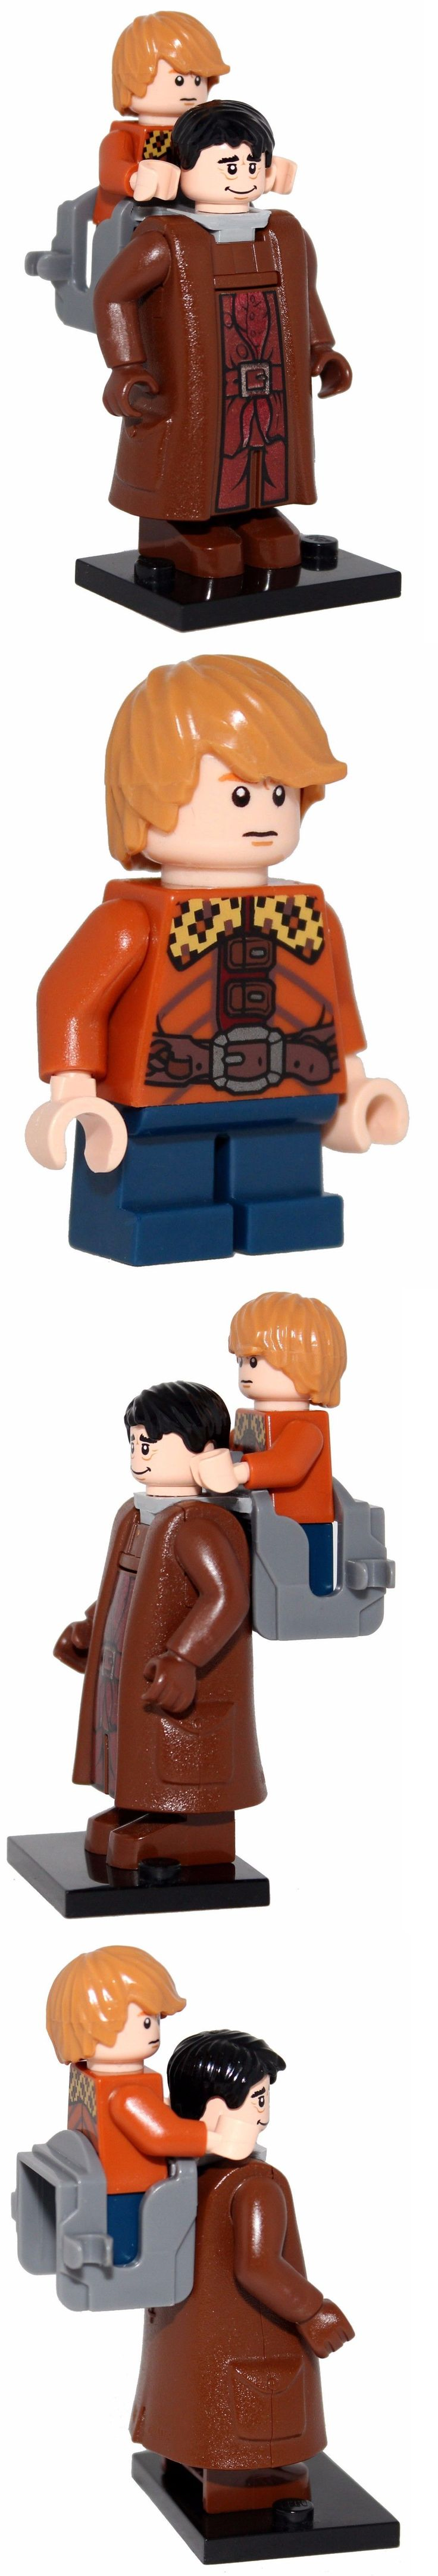 Other Building Toys 19015: Bran And Hodor - Game Of Thrones Minifigures Made Of Lego And Compatible Parts -> BUY IT NOW ONLY: $34.99 on eBay!